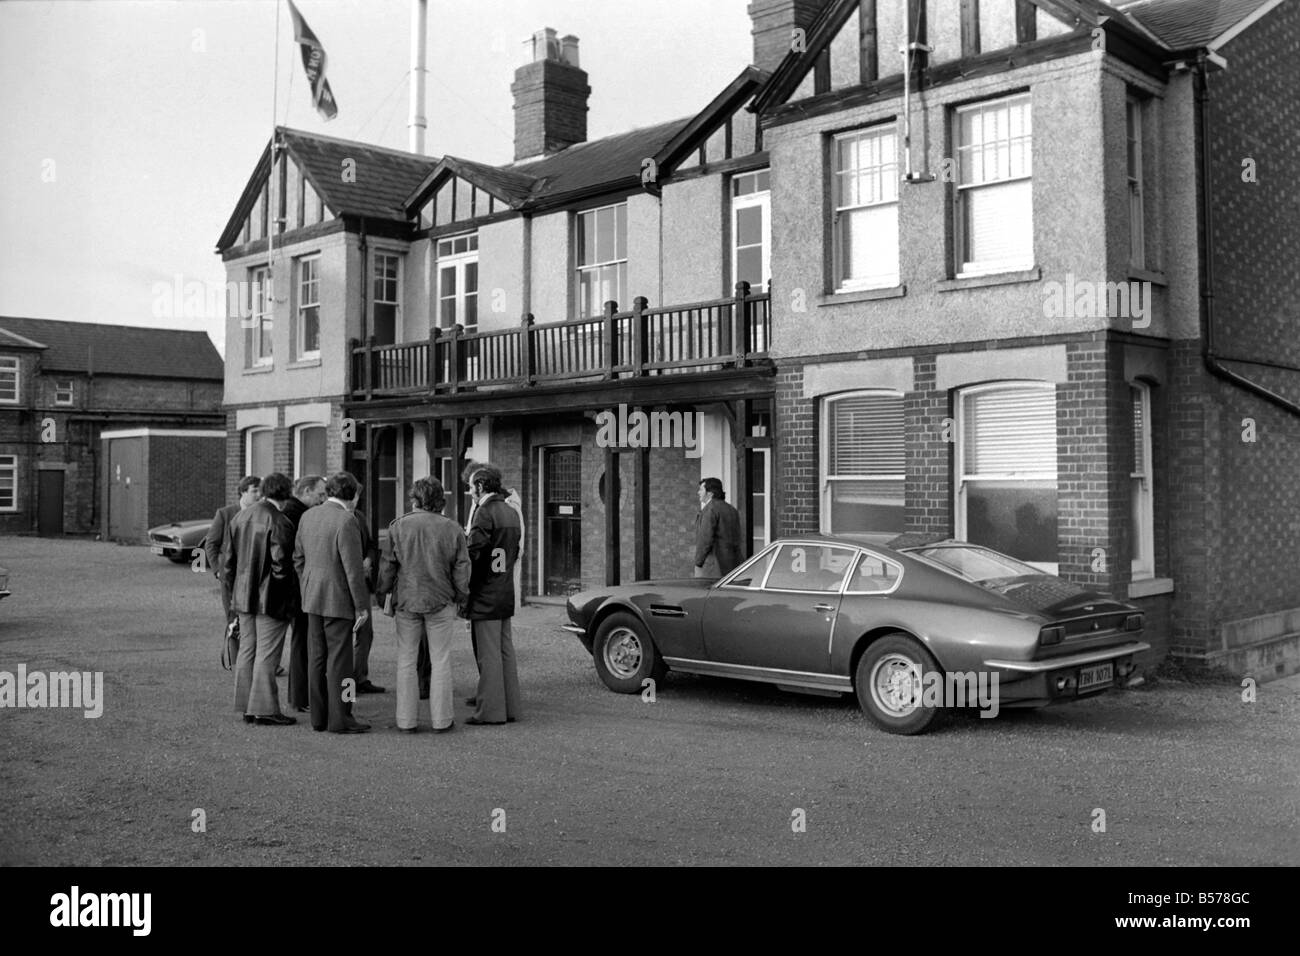 End Of An Era Aston Martin Close Newport Pagnell After The Stock Photo Alamy